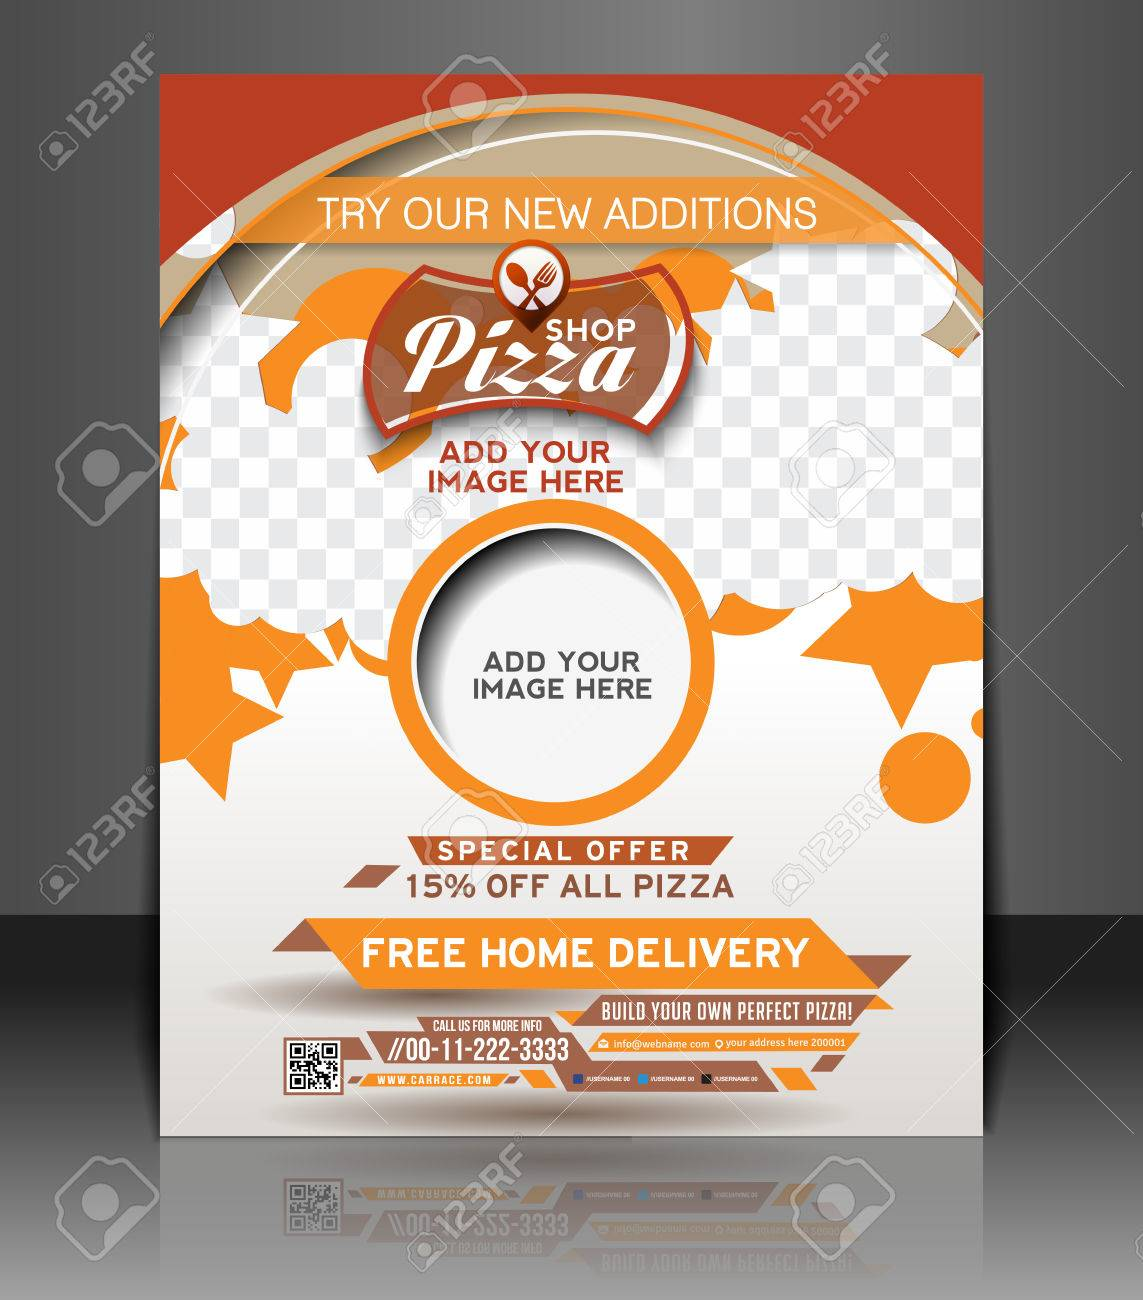 Poster design free template - Pizza Shop Flyer Poster Template Design Stock Vector 27143725